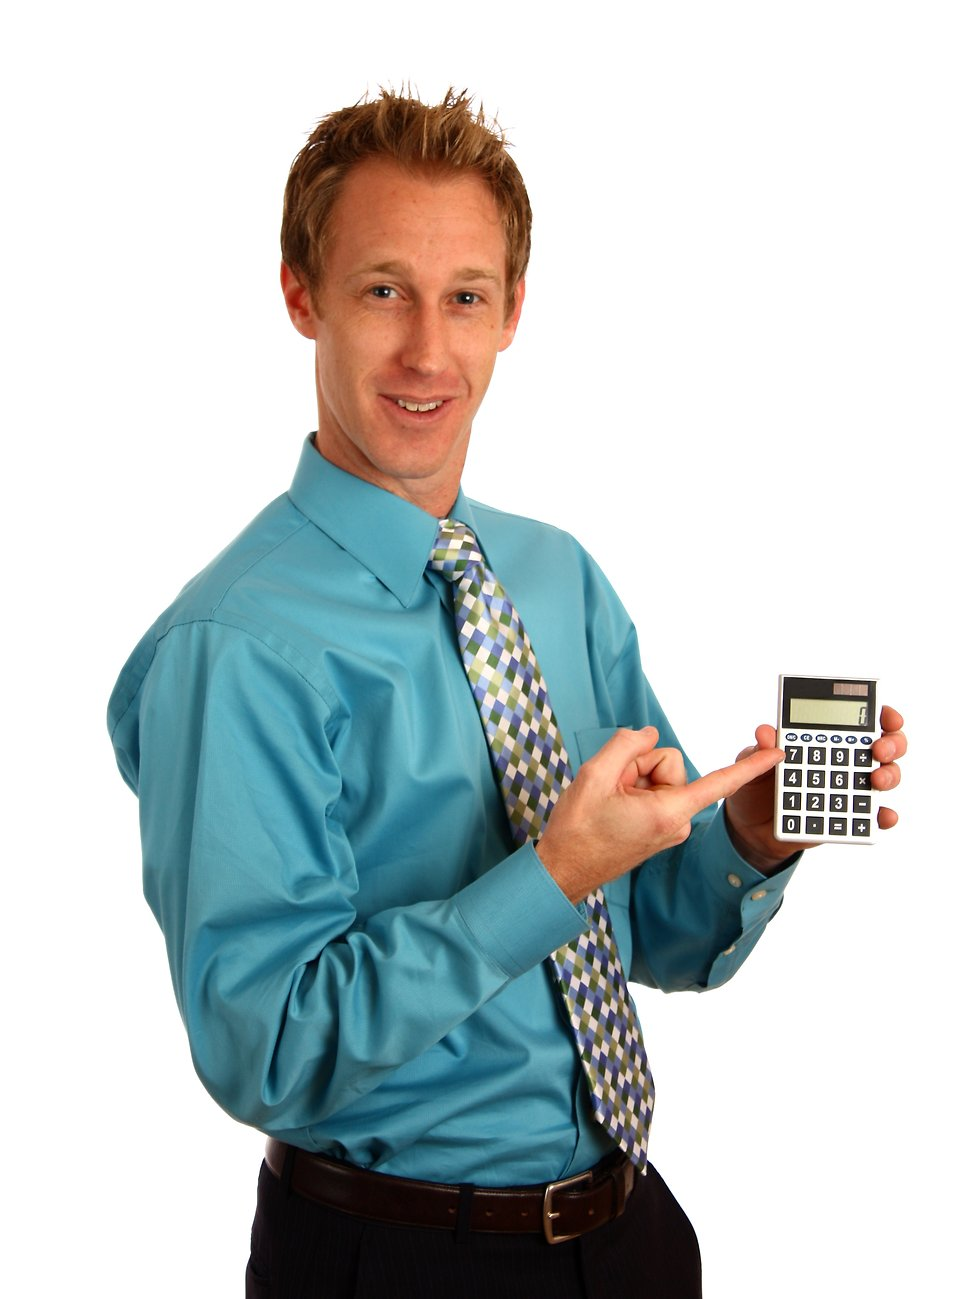 A young businessman holding a calculator : Free Stock Photo